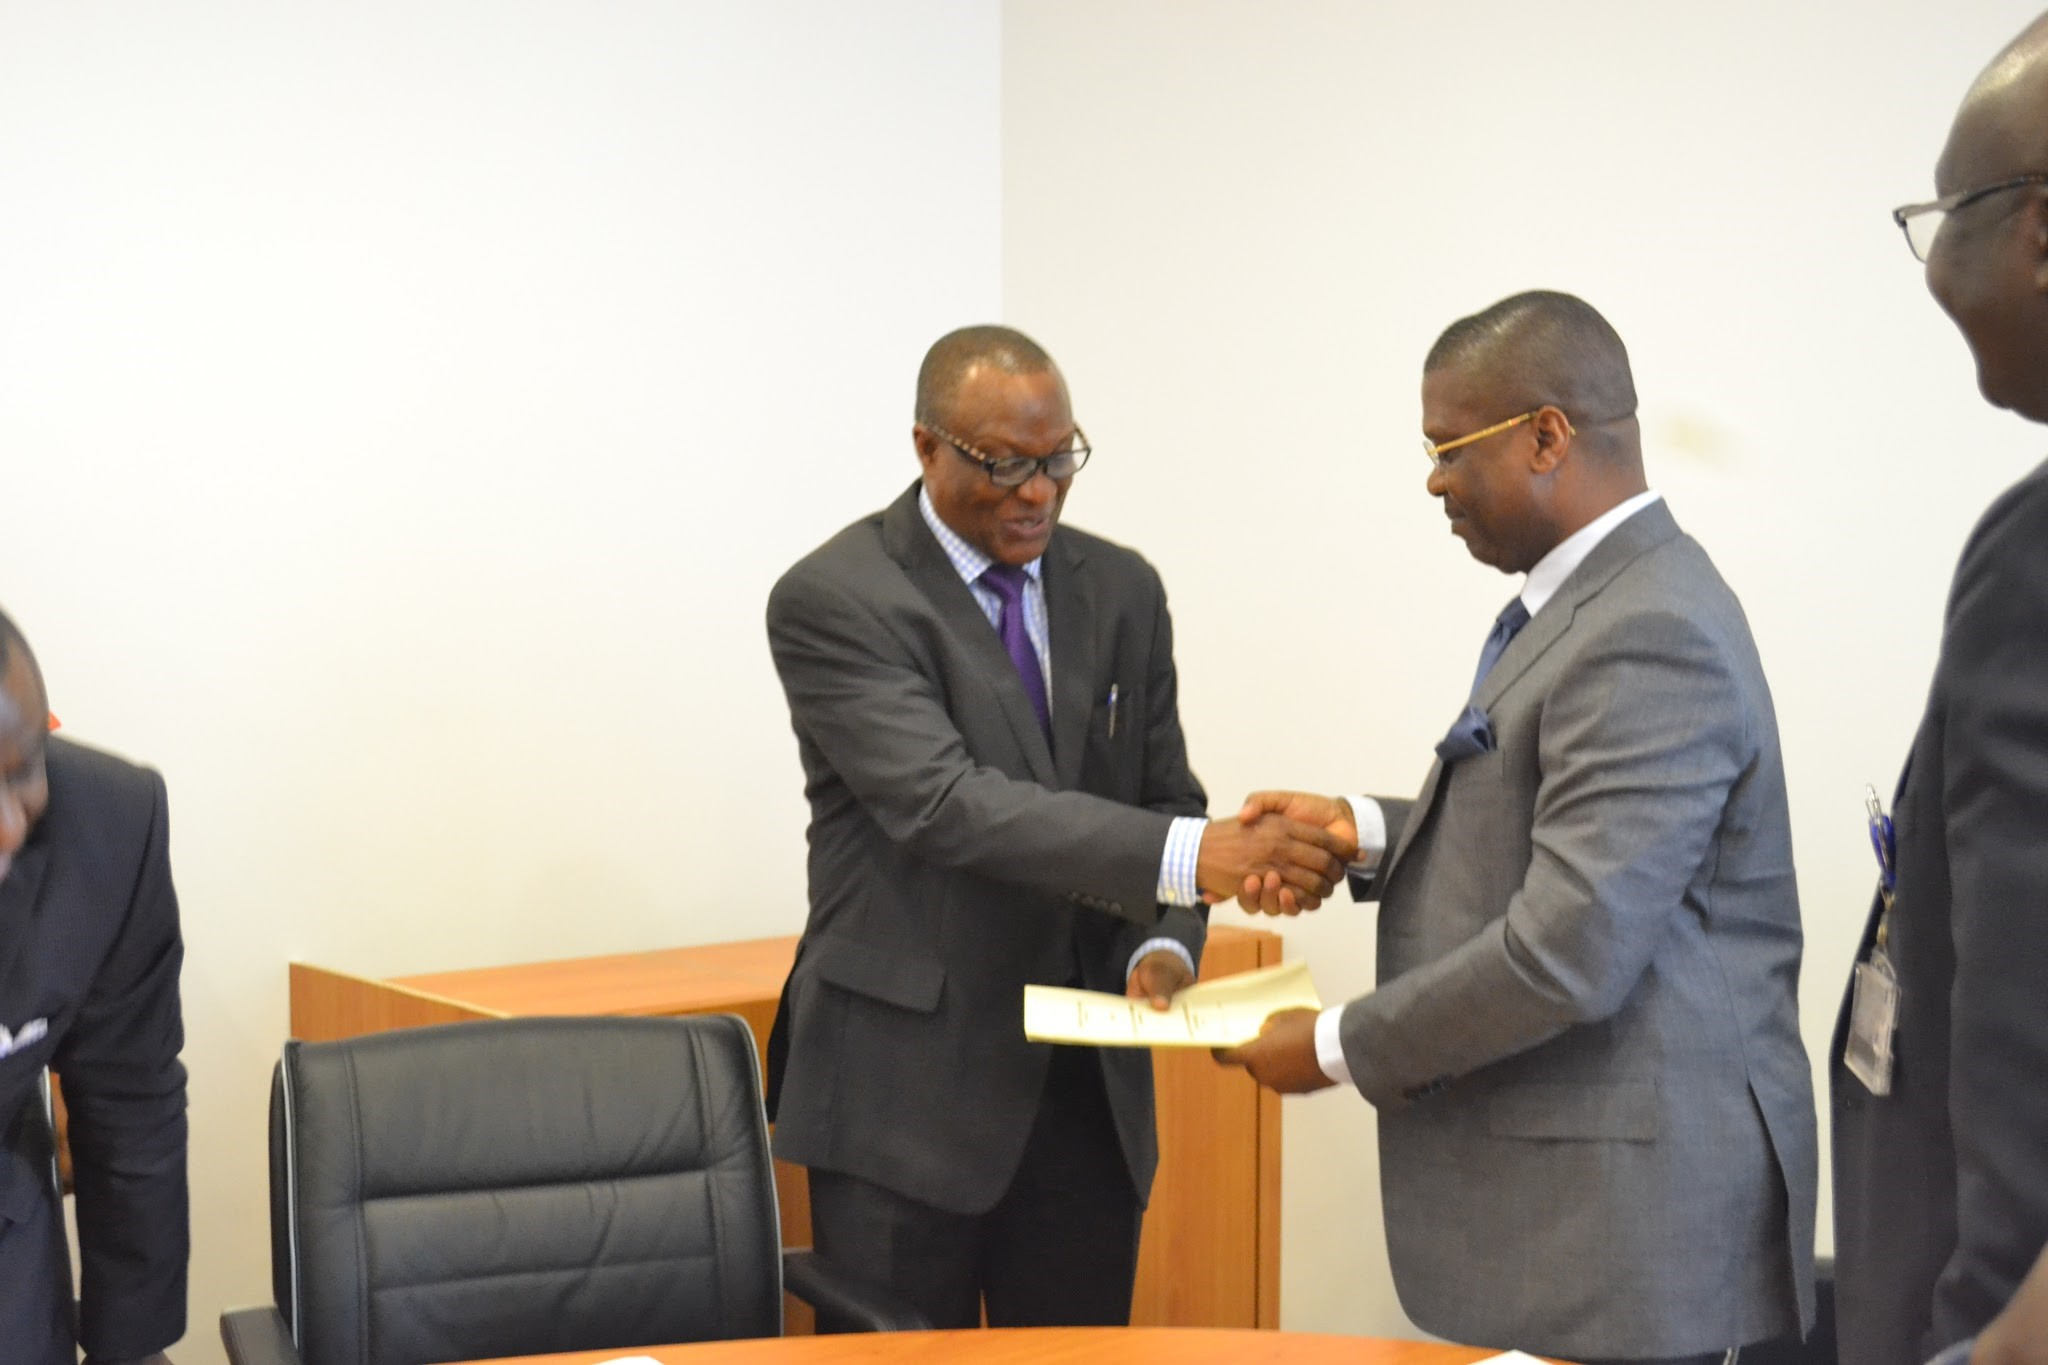 Nddc Pind Sign Partnership Agreement For Niger Delta Development